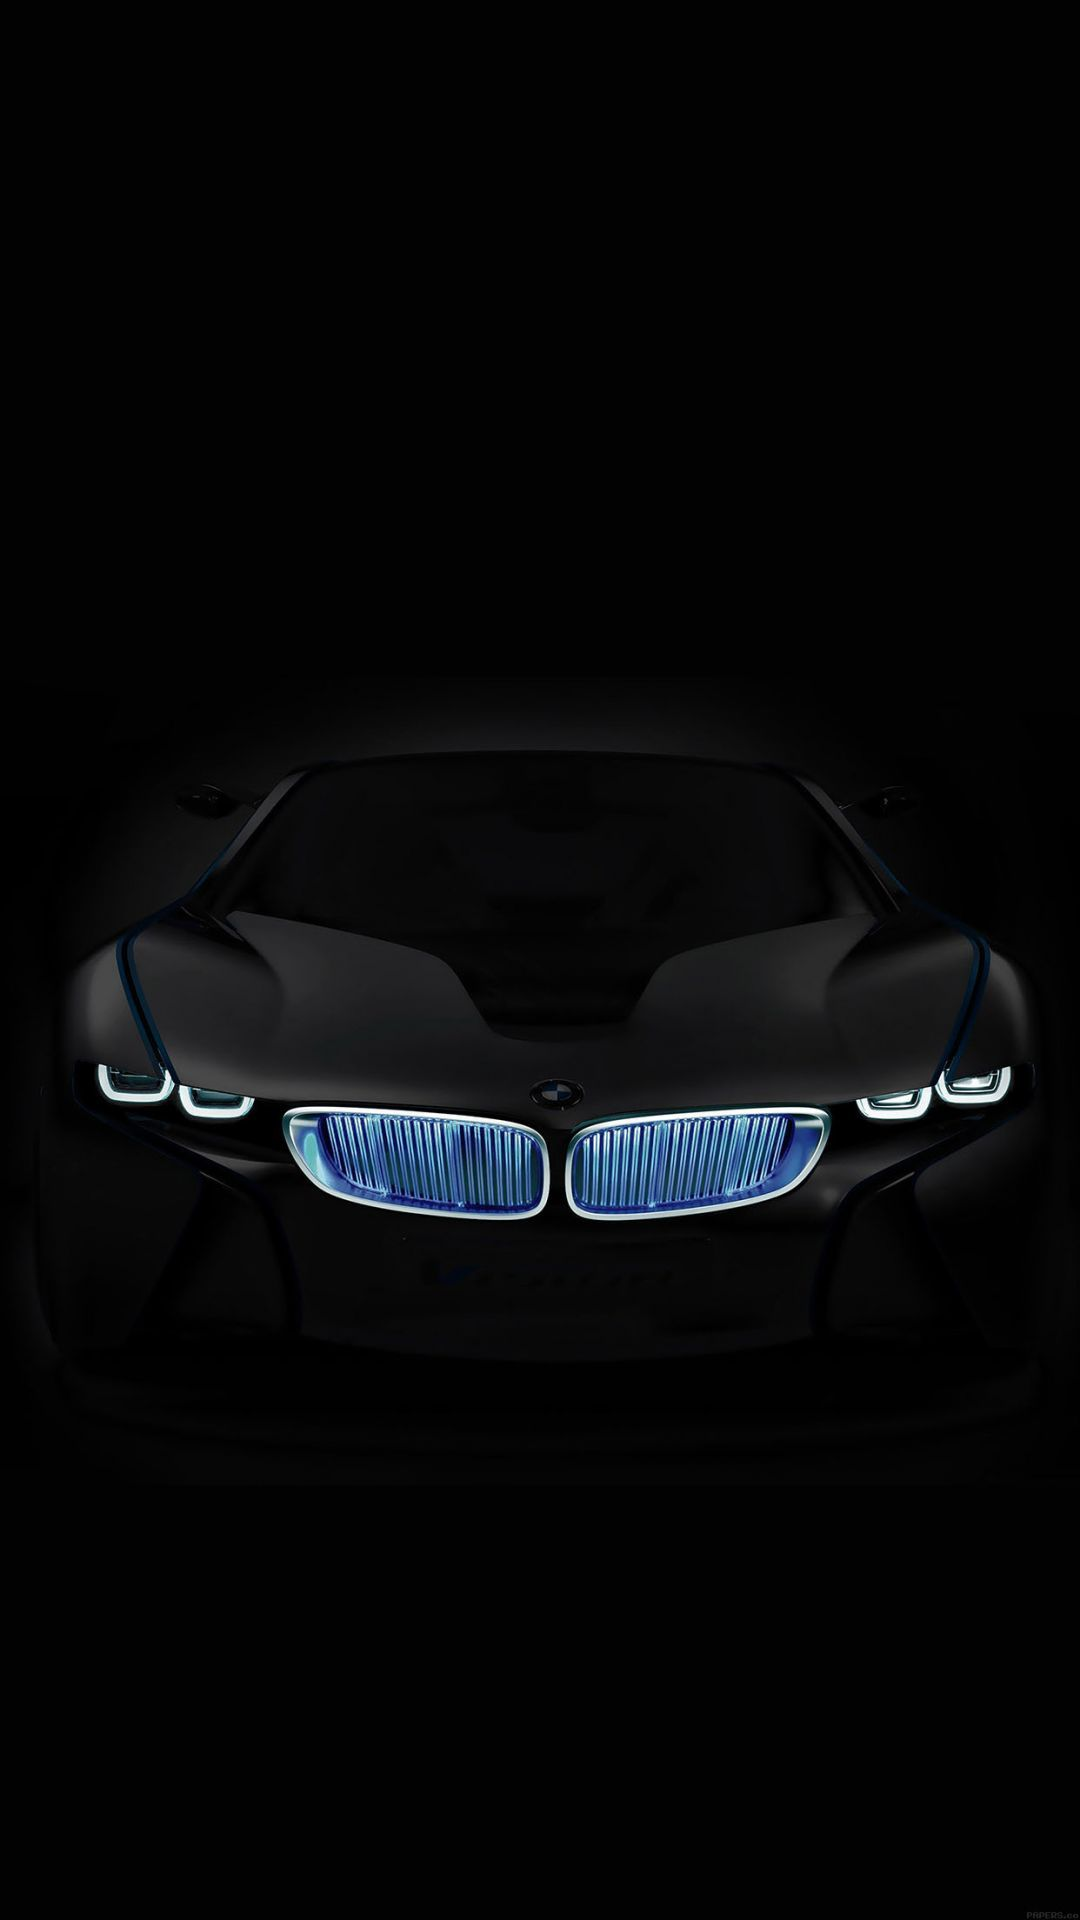 BMW Symbol Wallpapers - Top Free BMW Symbol Backgrounds ...